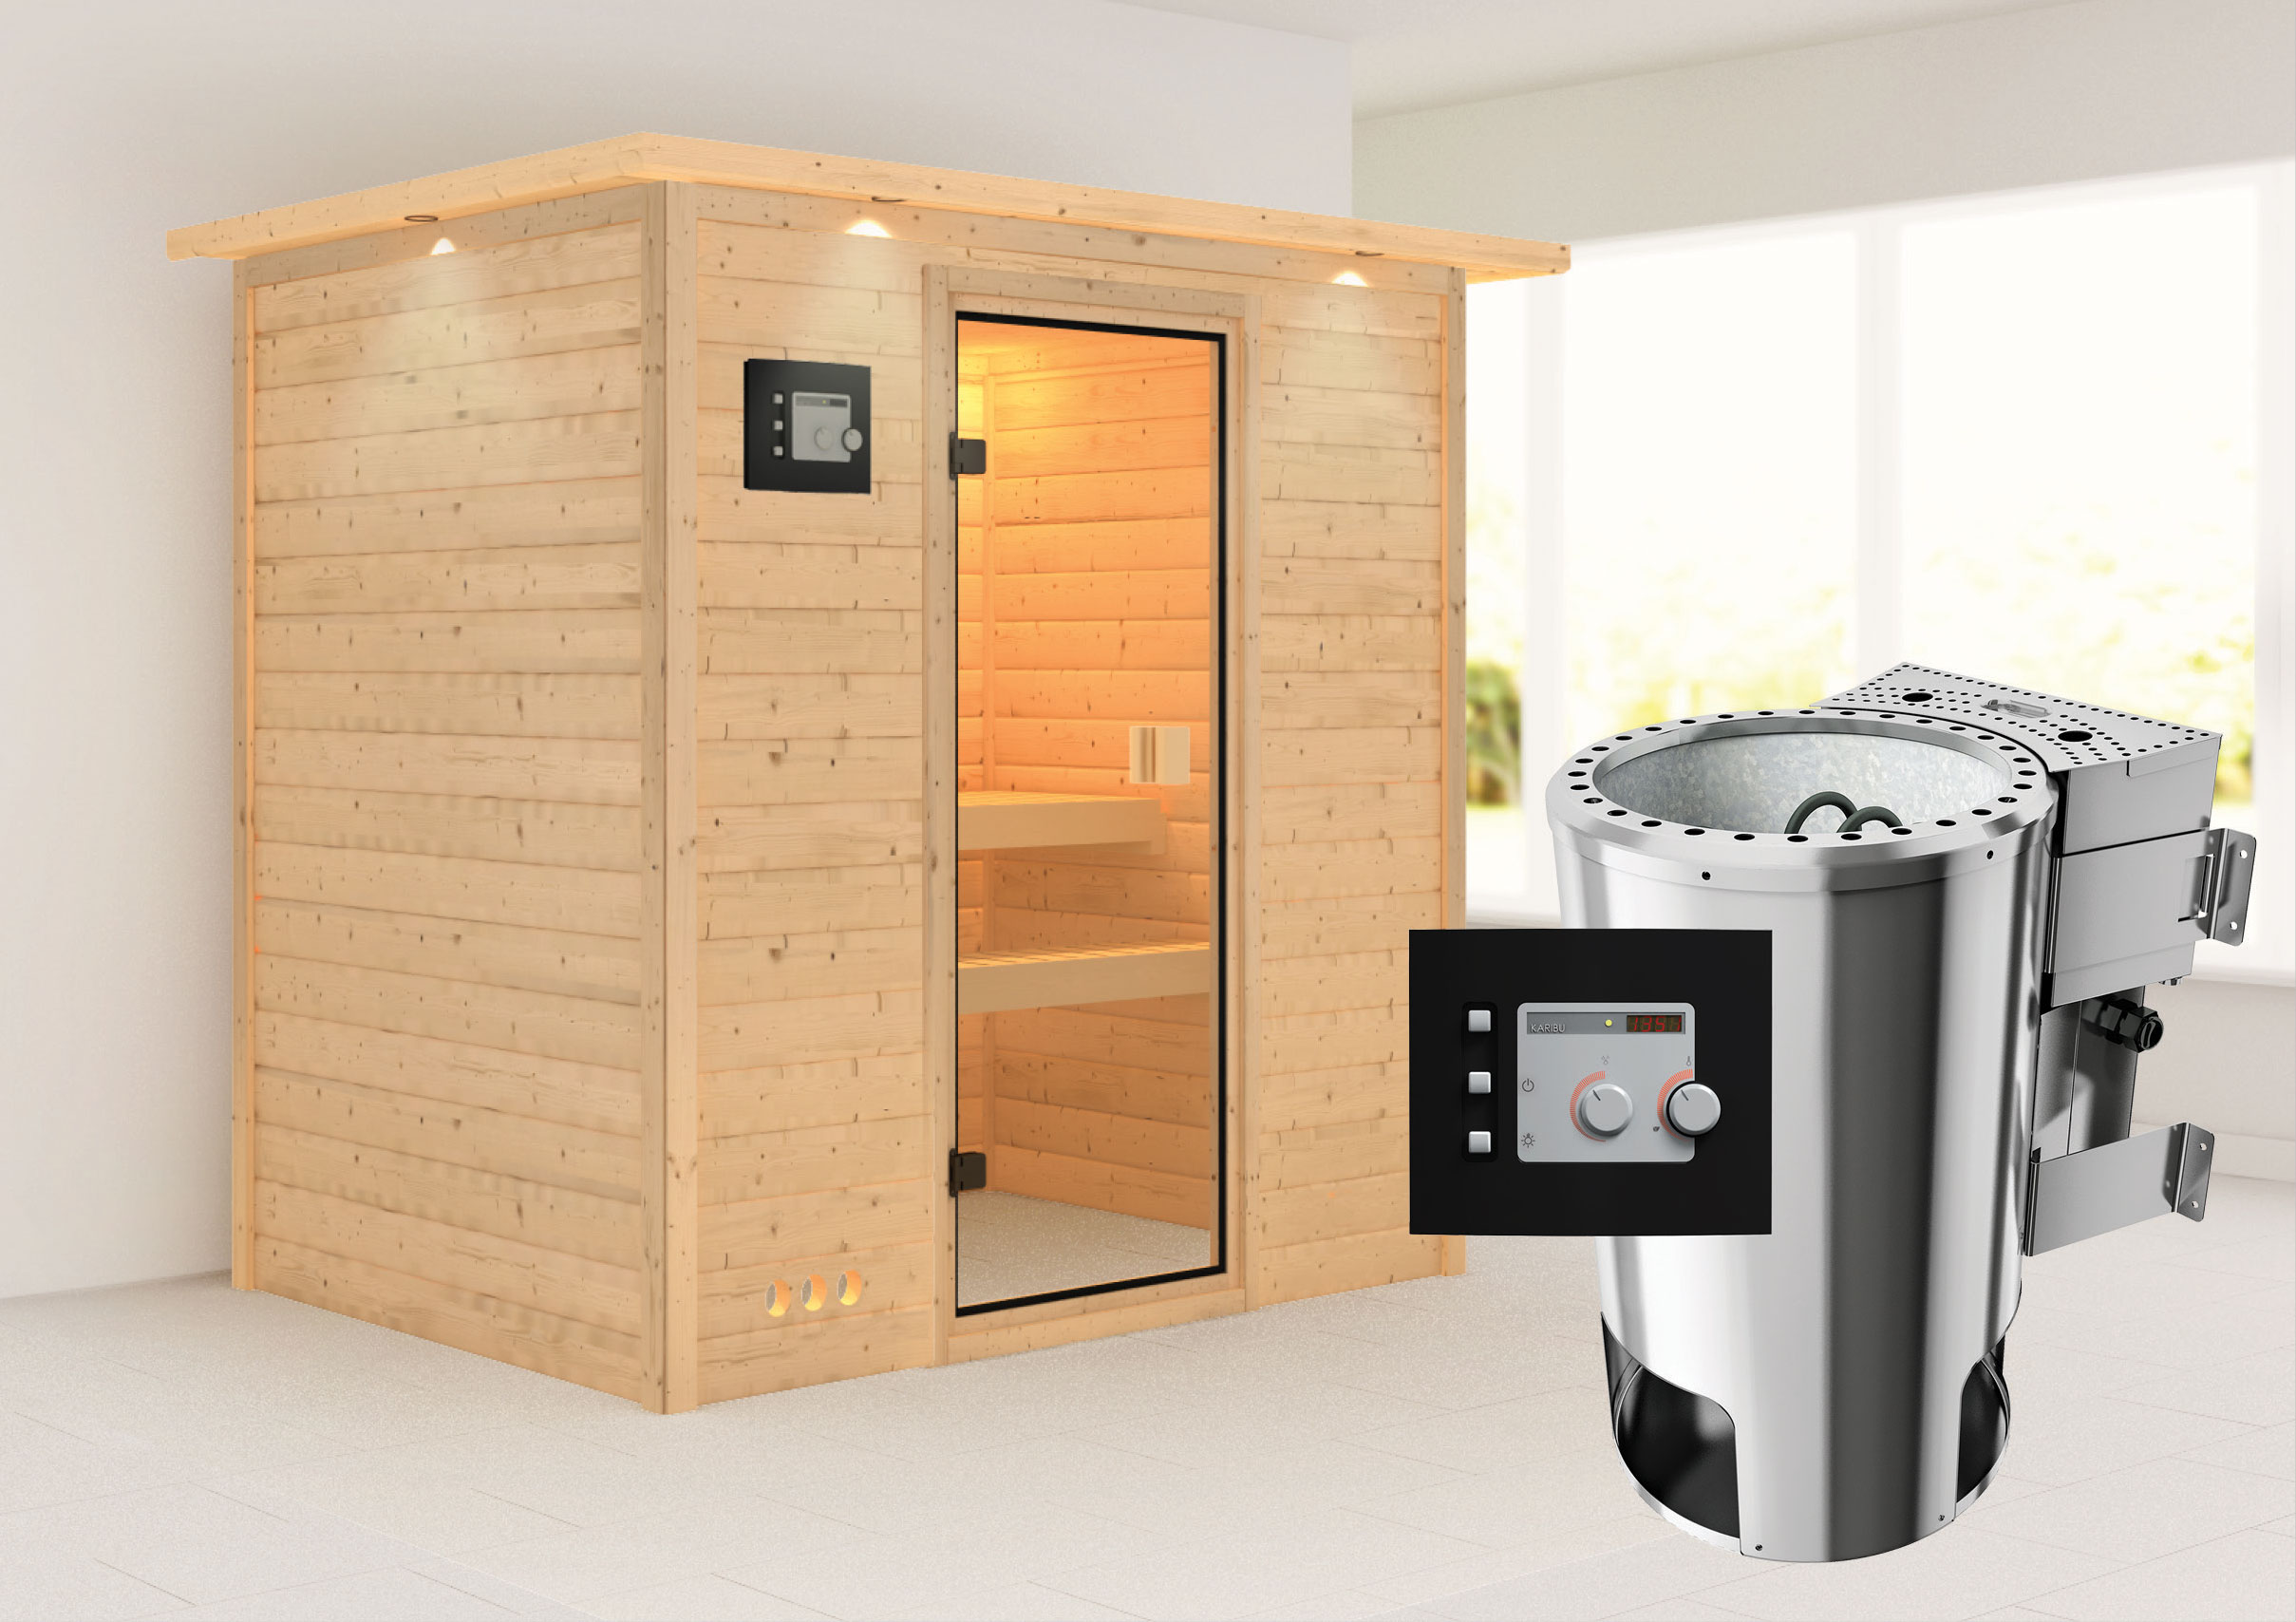 karibu sauna ronja 230 volt mit dachkranz bio saunaofen 3 6kw extern bei. Black Bedroom Furniture Sets. Home Design Ideas